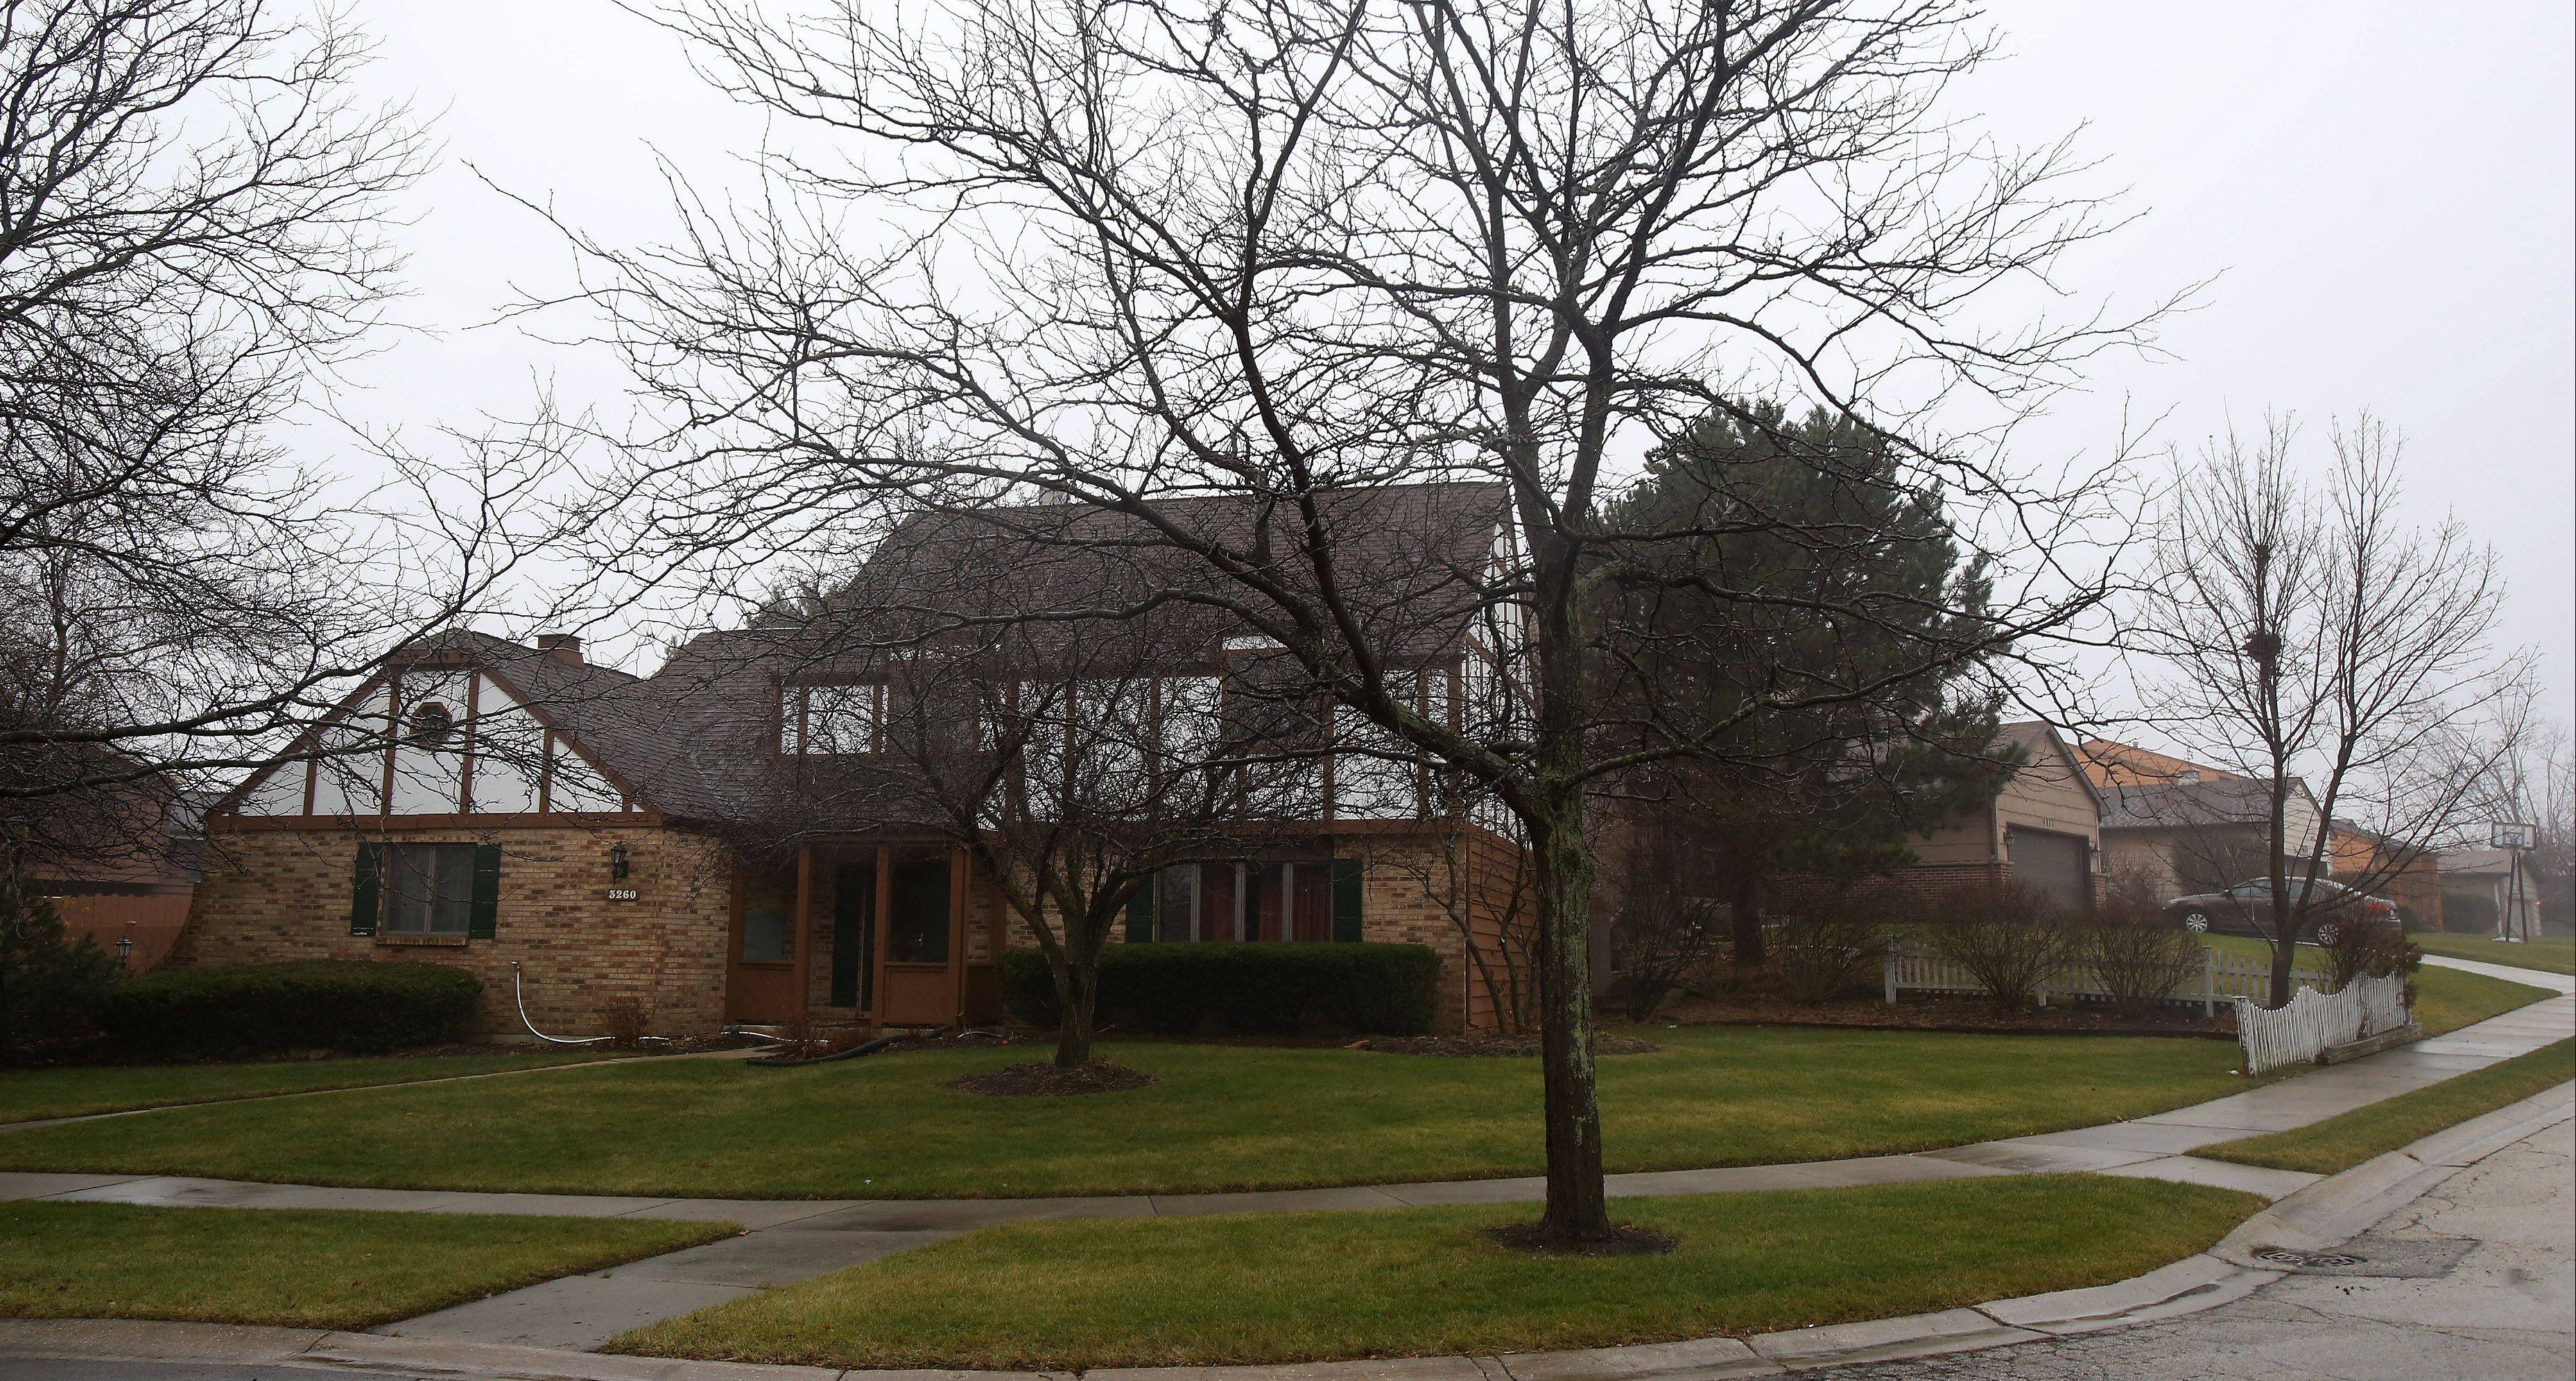 Burr Oak Drive is the major street running through the Oak Crest neighborhood.